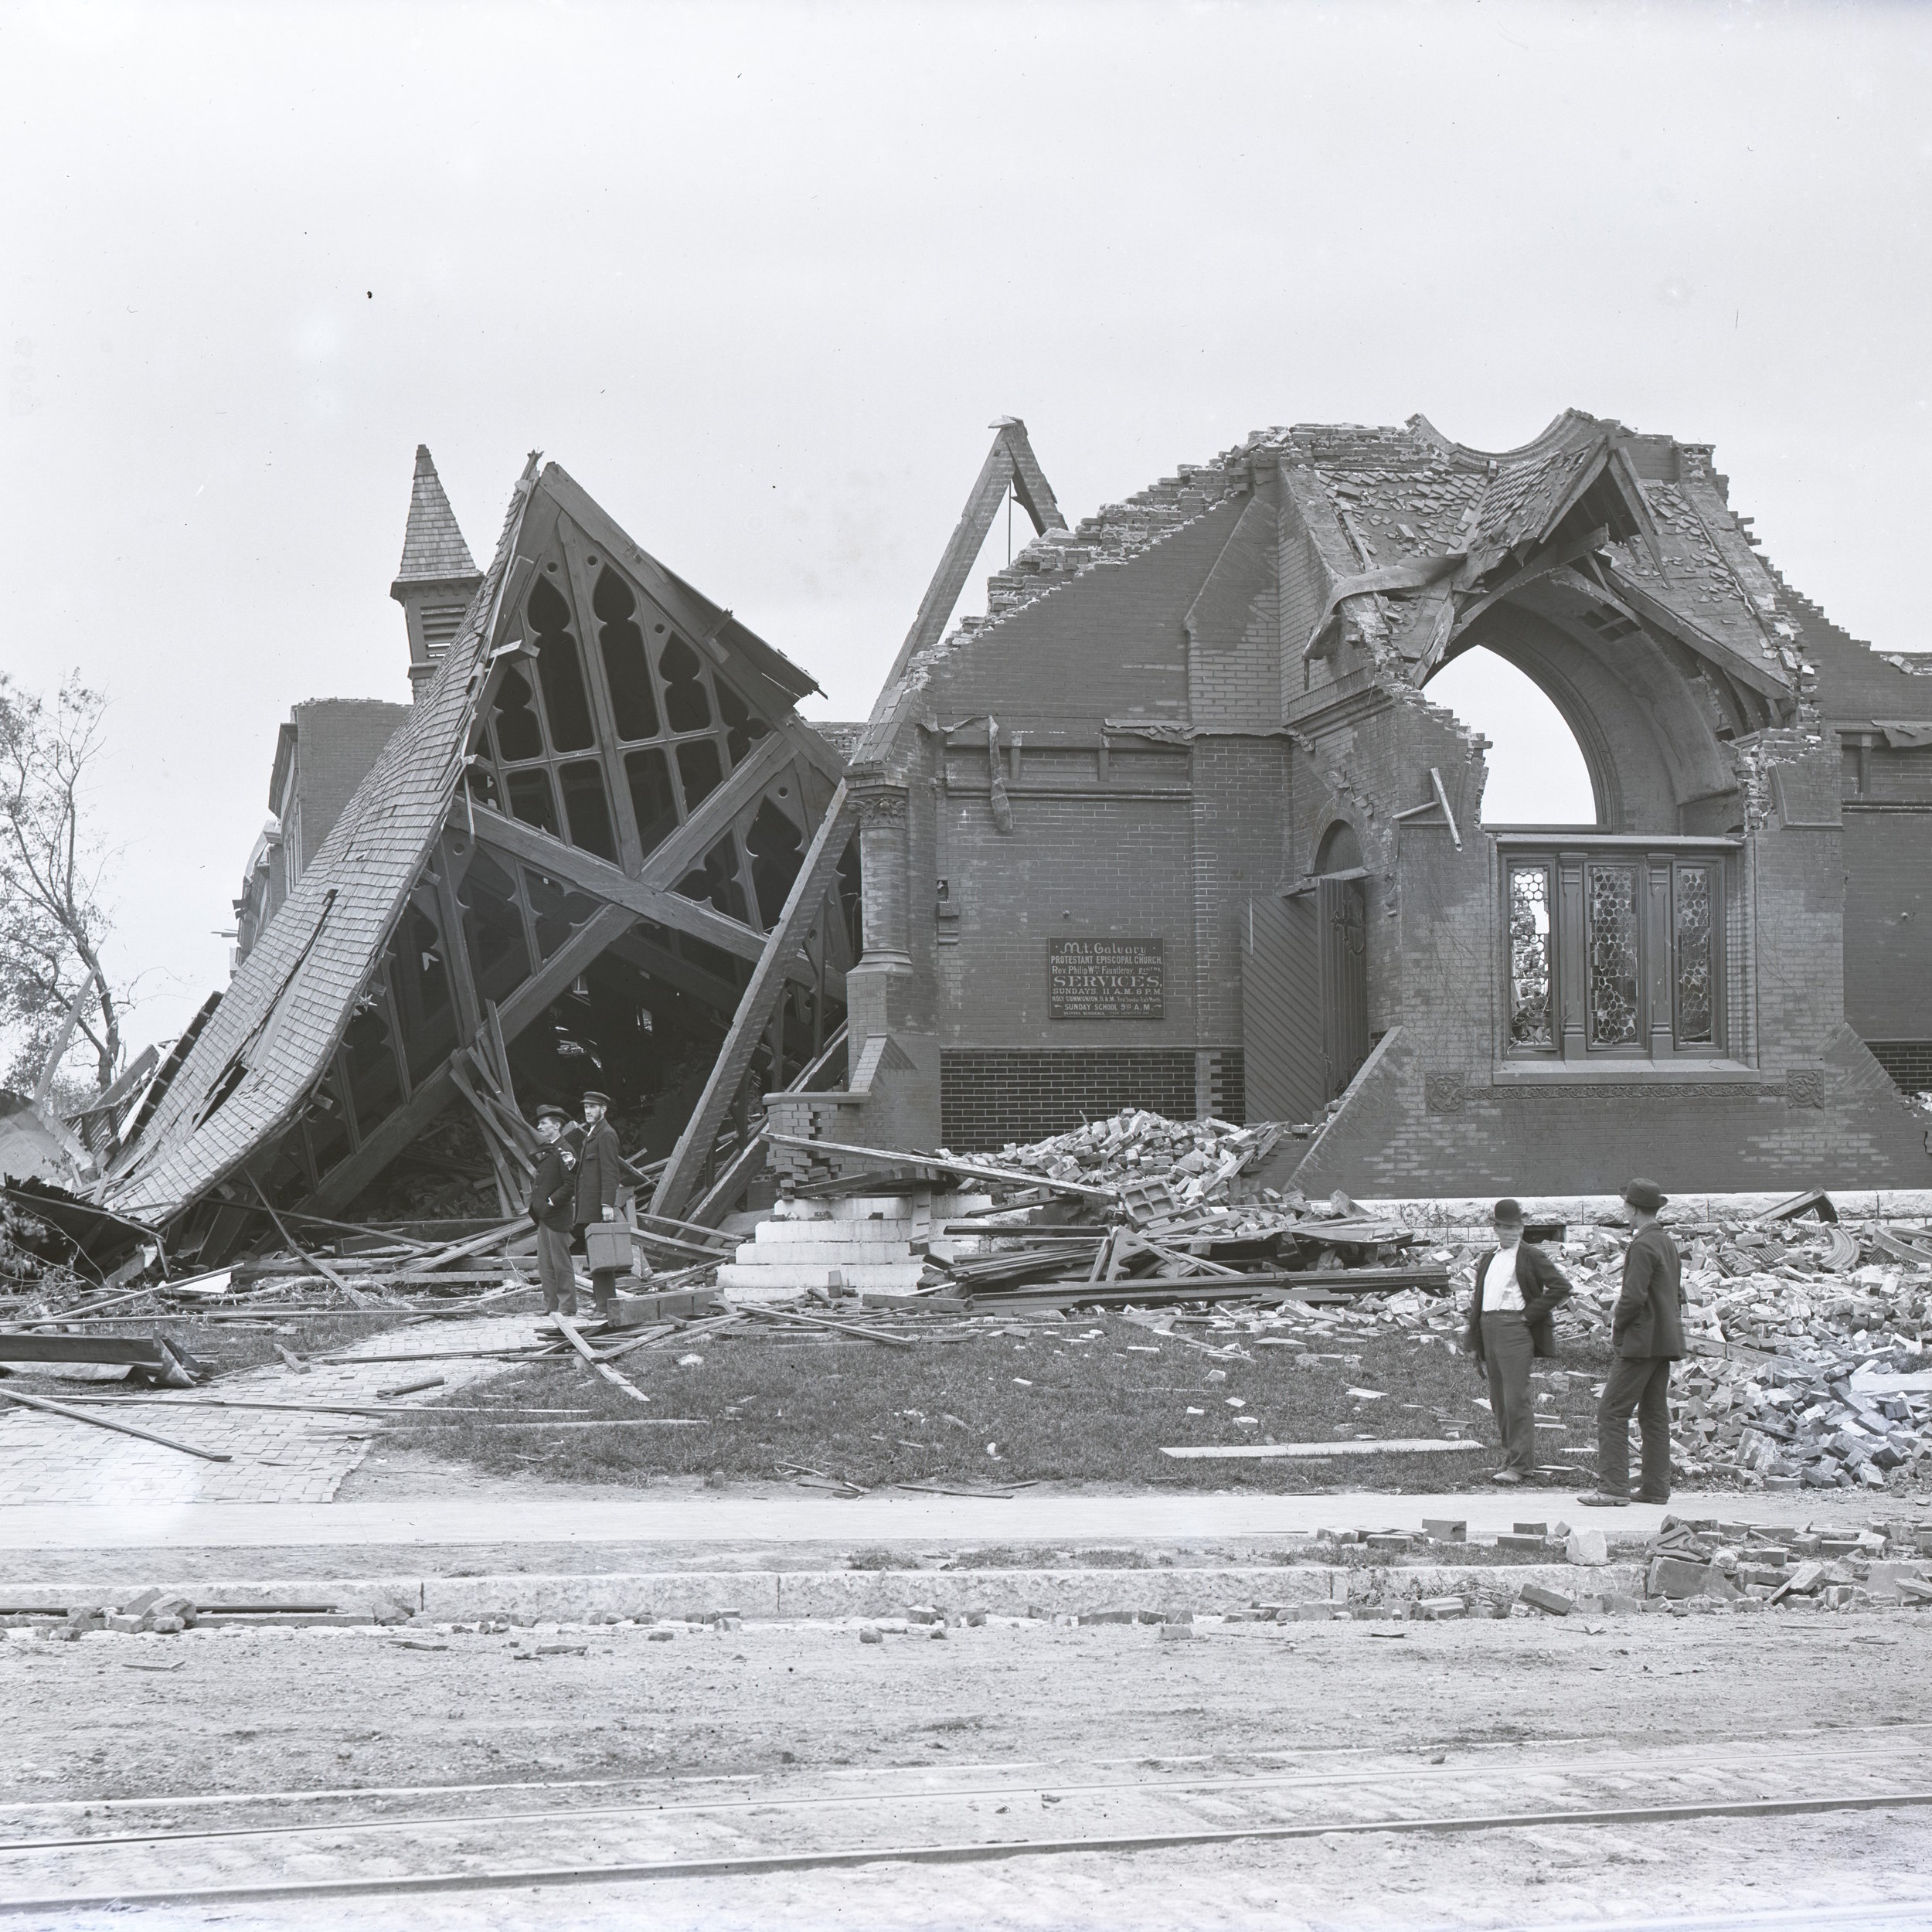 Ruins of Mt. Calvary Episcopal Church, St. Louis, after a tornado devastated much of the city in May 1896. Photograph courtesy of the Missouri Historical Society.